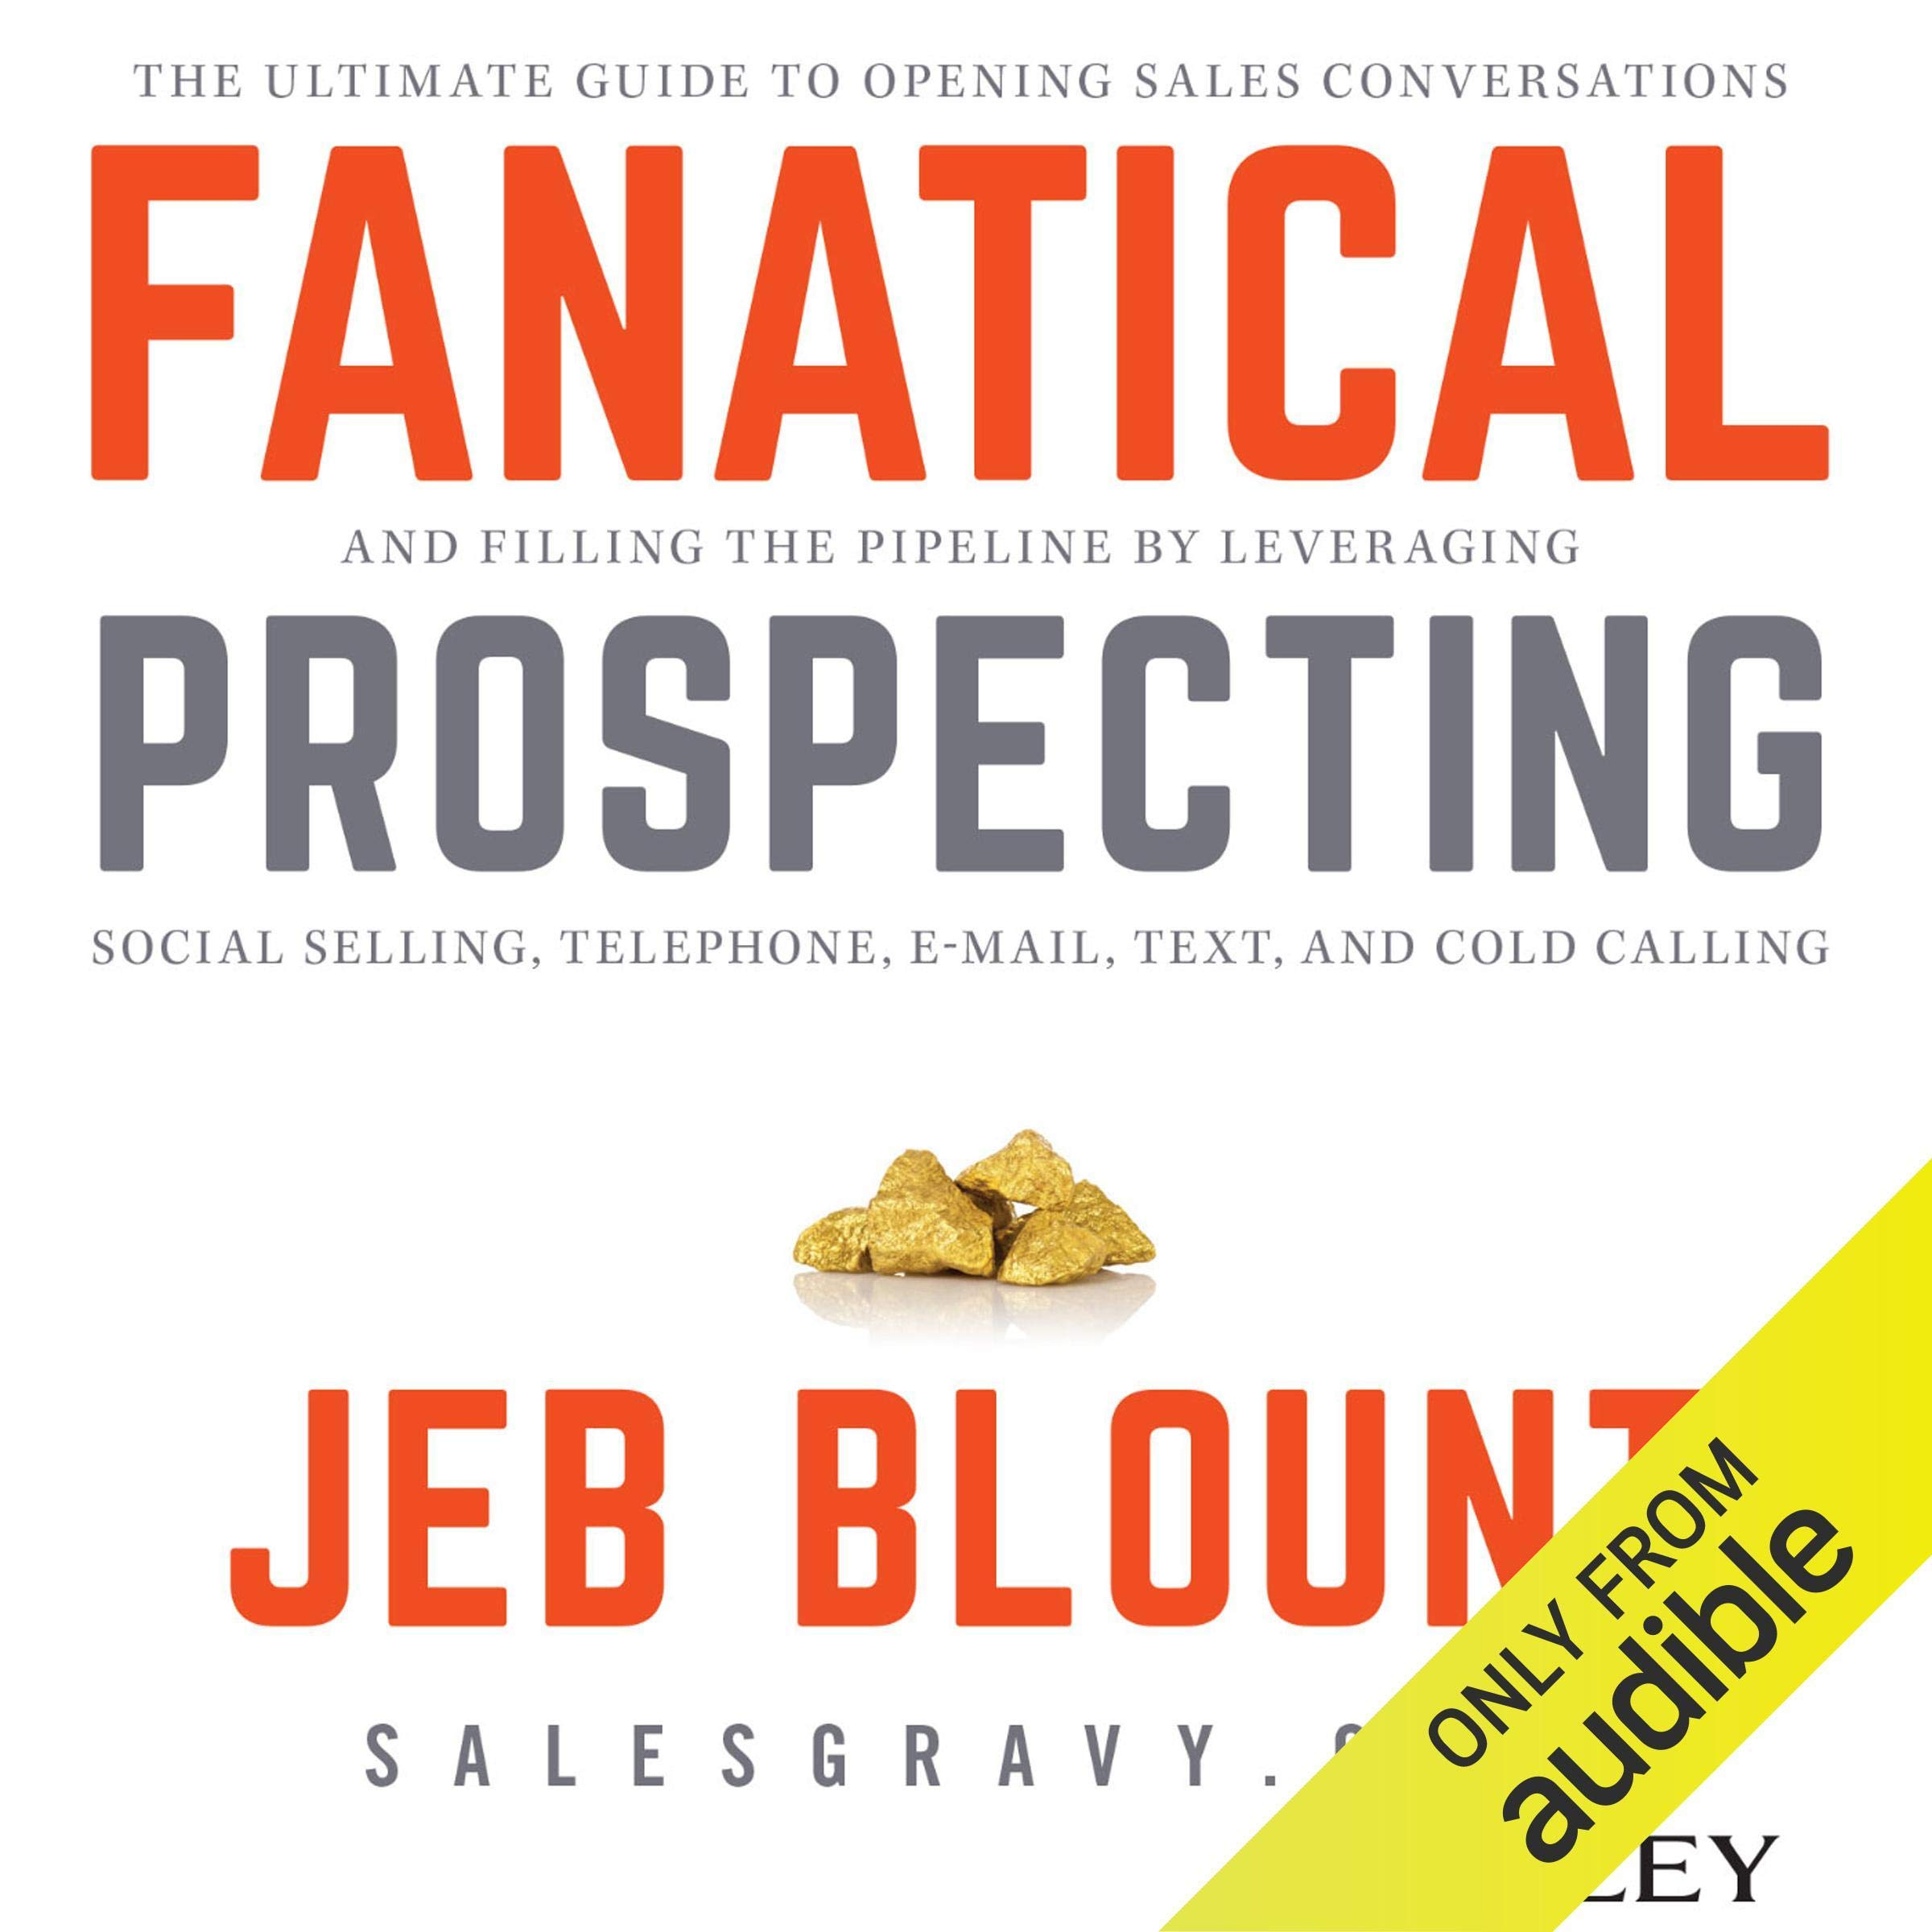 Fanatical Prospecting  The Ultimate Guide For Starting Sales Conversations And Filling The Pipeline By Leveraging Social Selling Telephone E Mail And Cold Calling